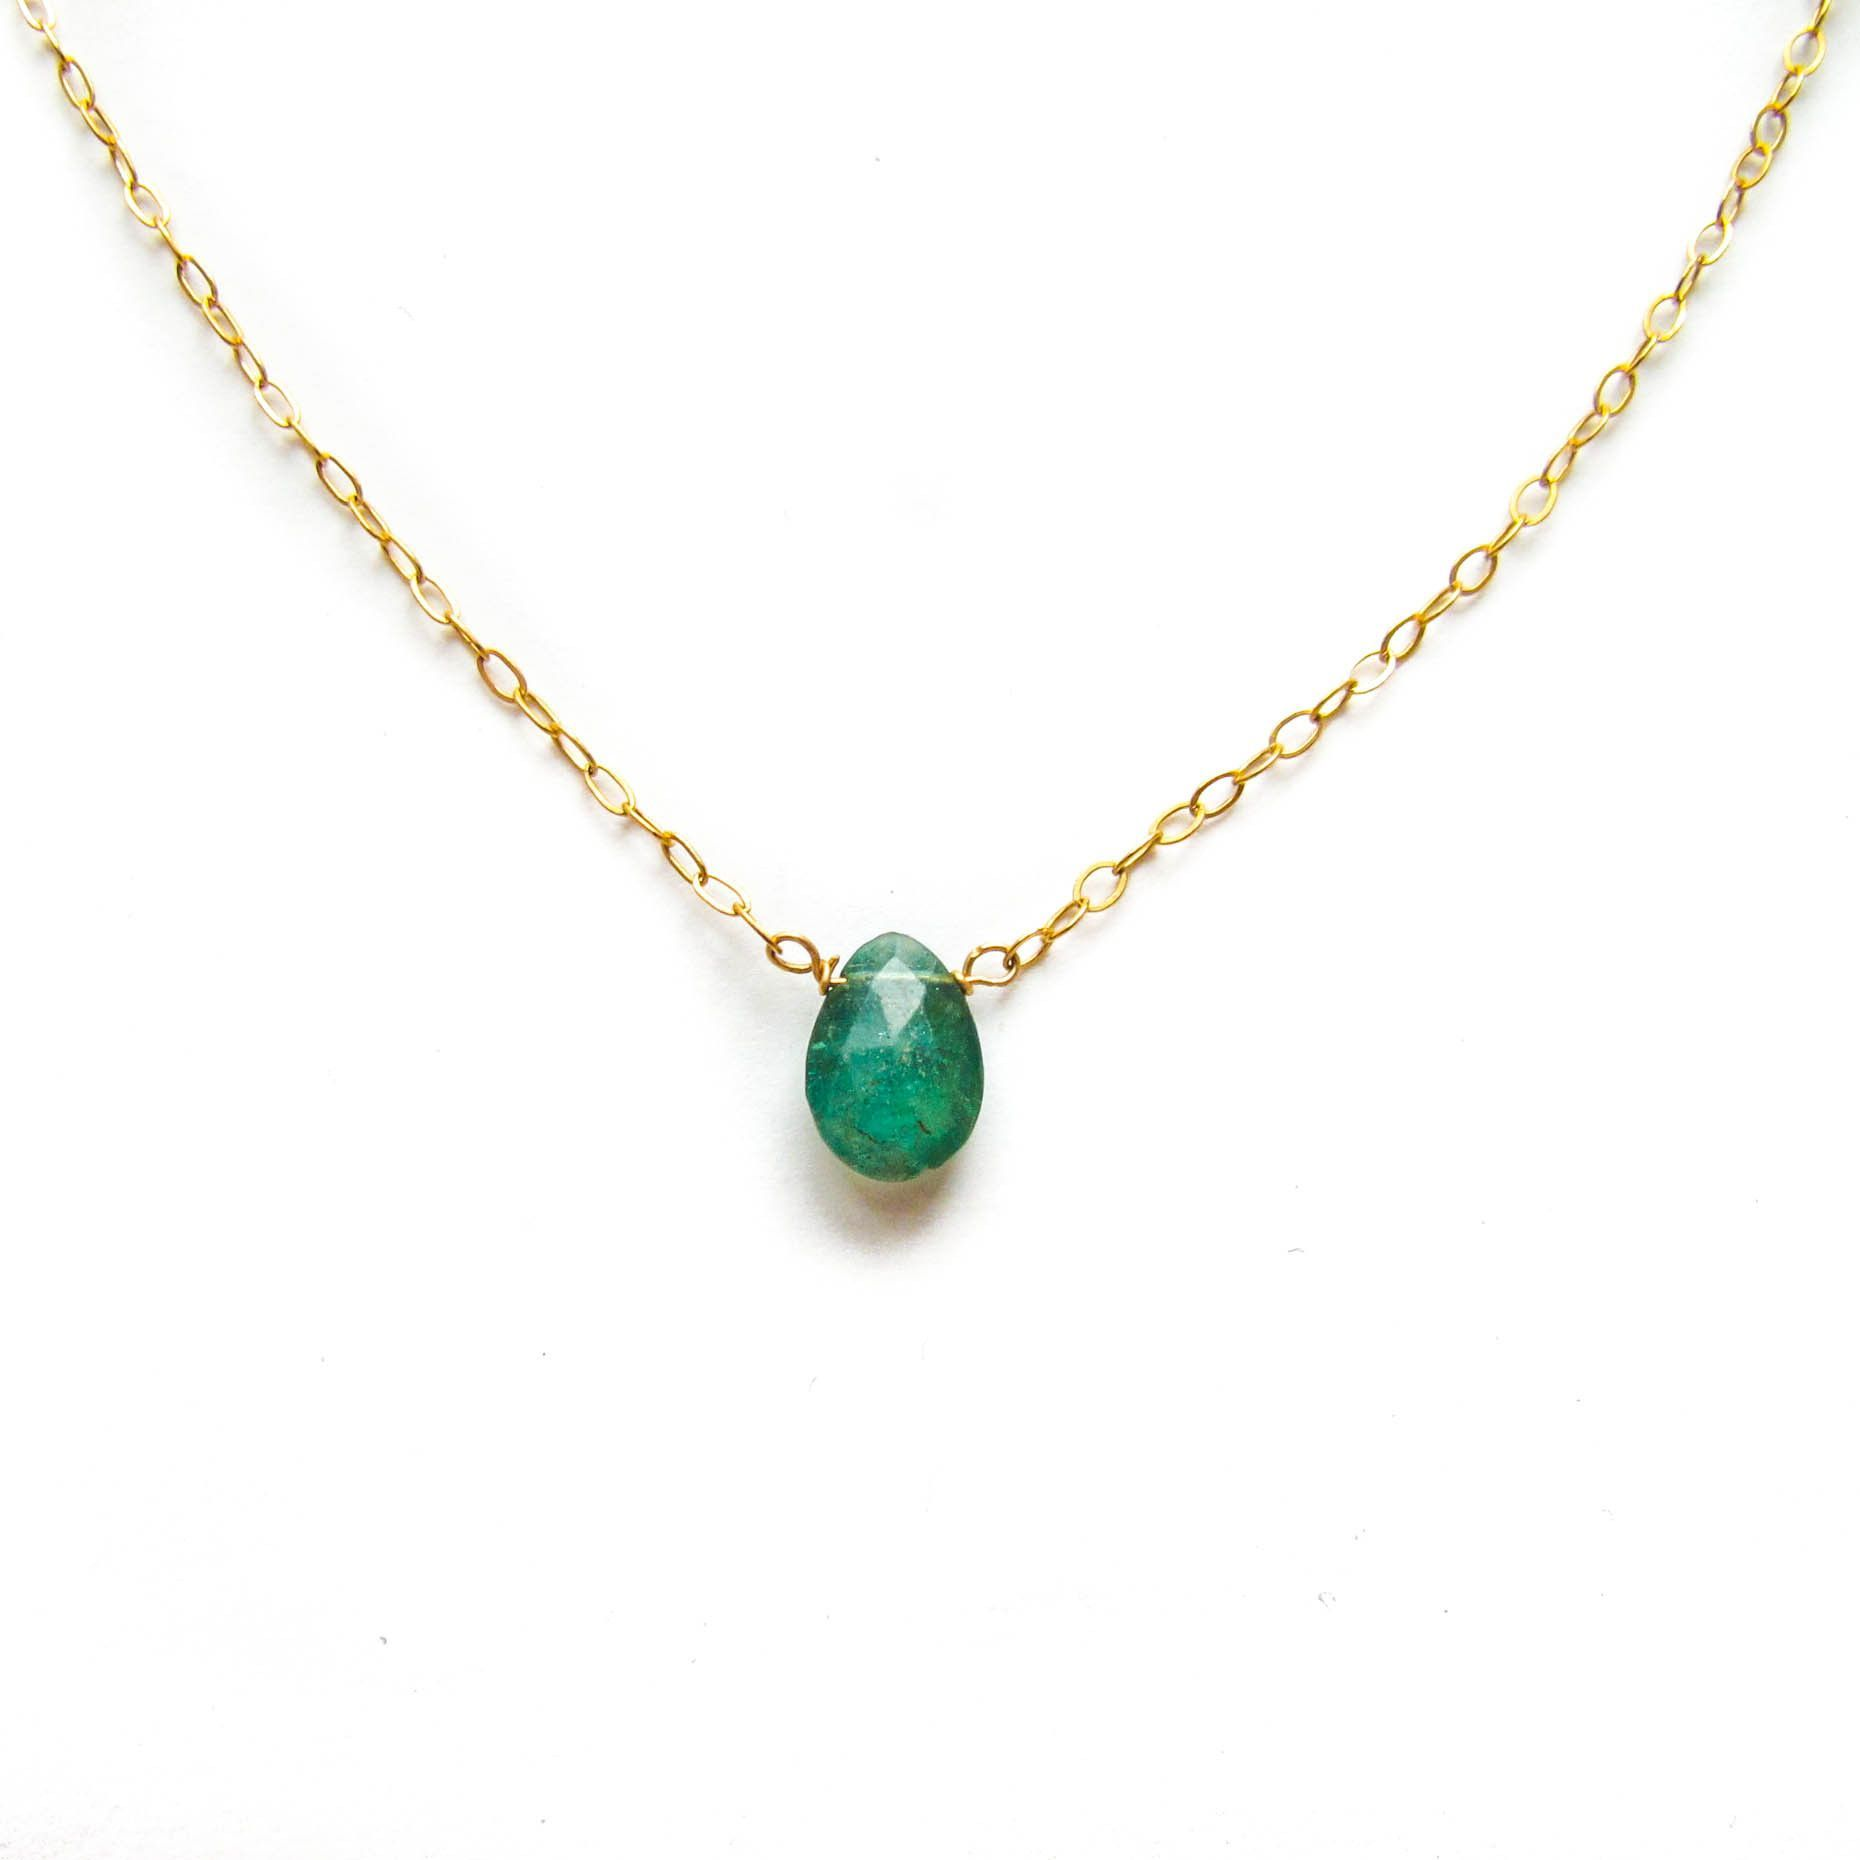 Emerald green apatite short pendant my style pinterest items similar to emerald green apatite necklace dainty unique green apatite pendant with delicate gold filled chain green gem chain necklace on etsy mozeypictures Gallery